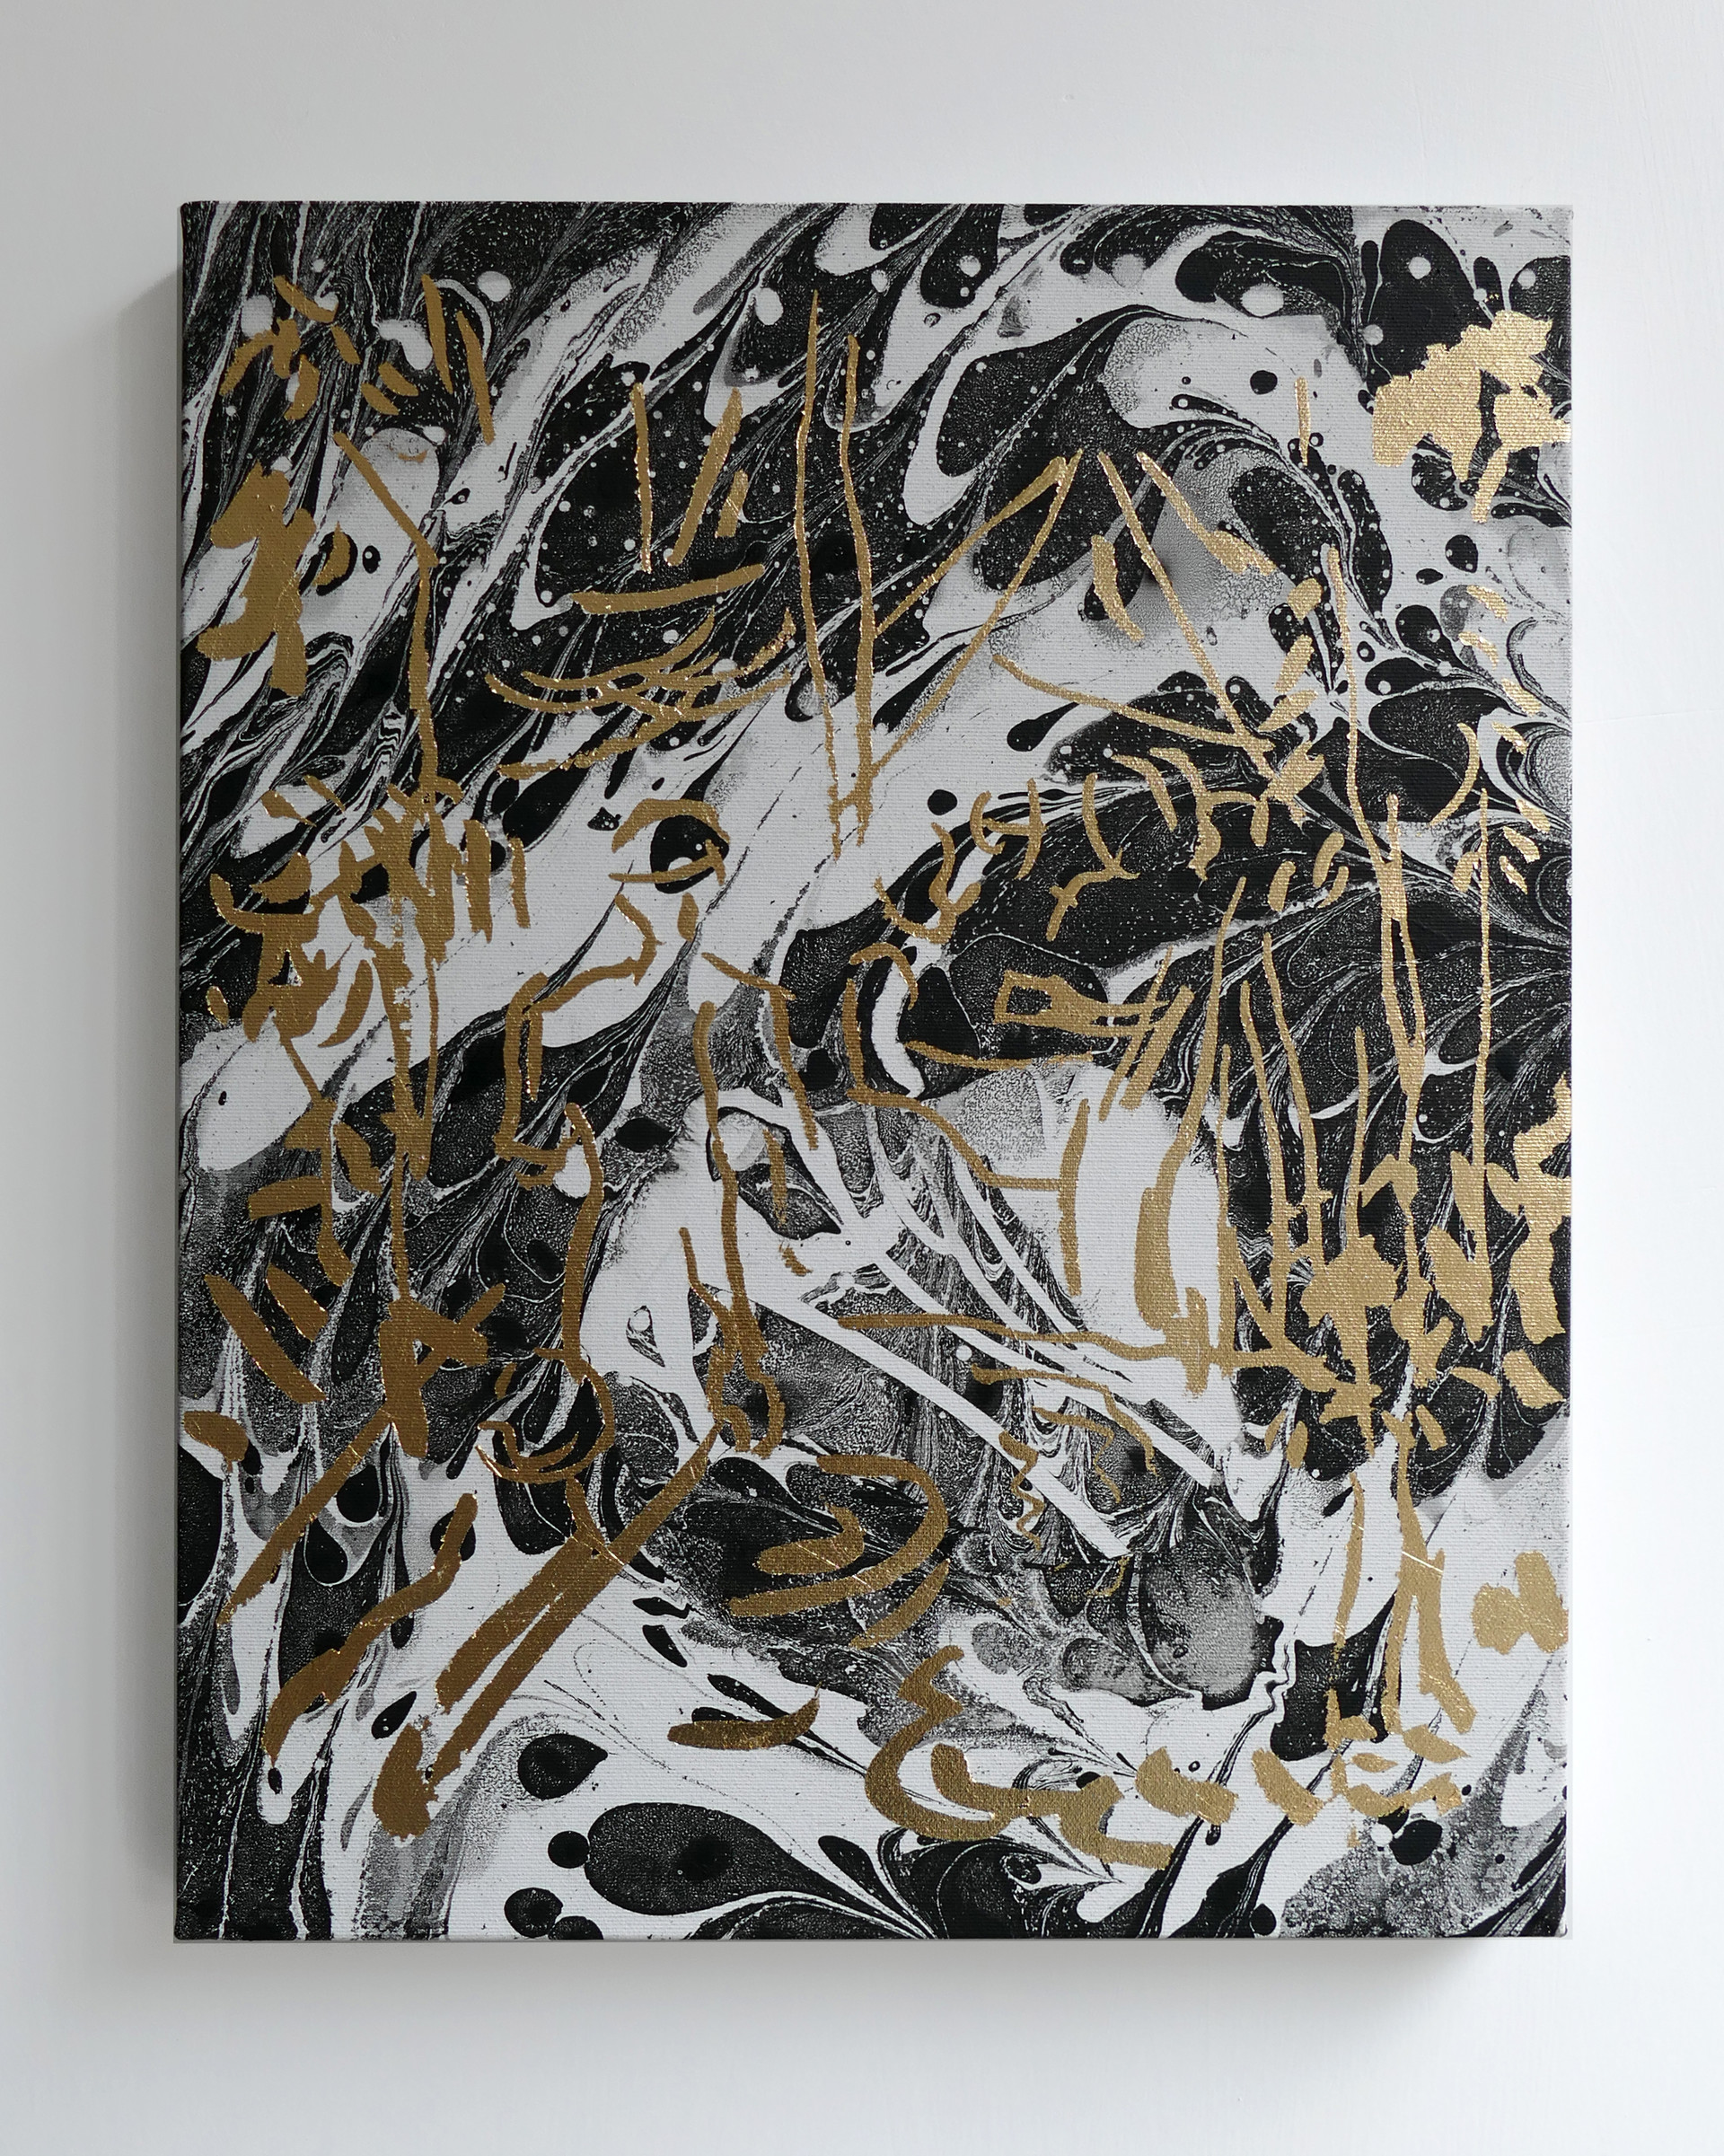 Vietcong 2019 Gilding glue, gold foil on oil marbled canvas 40x50cm